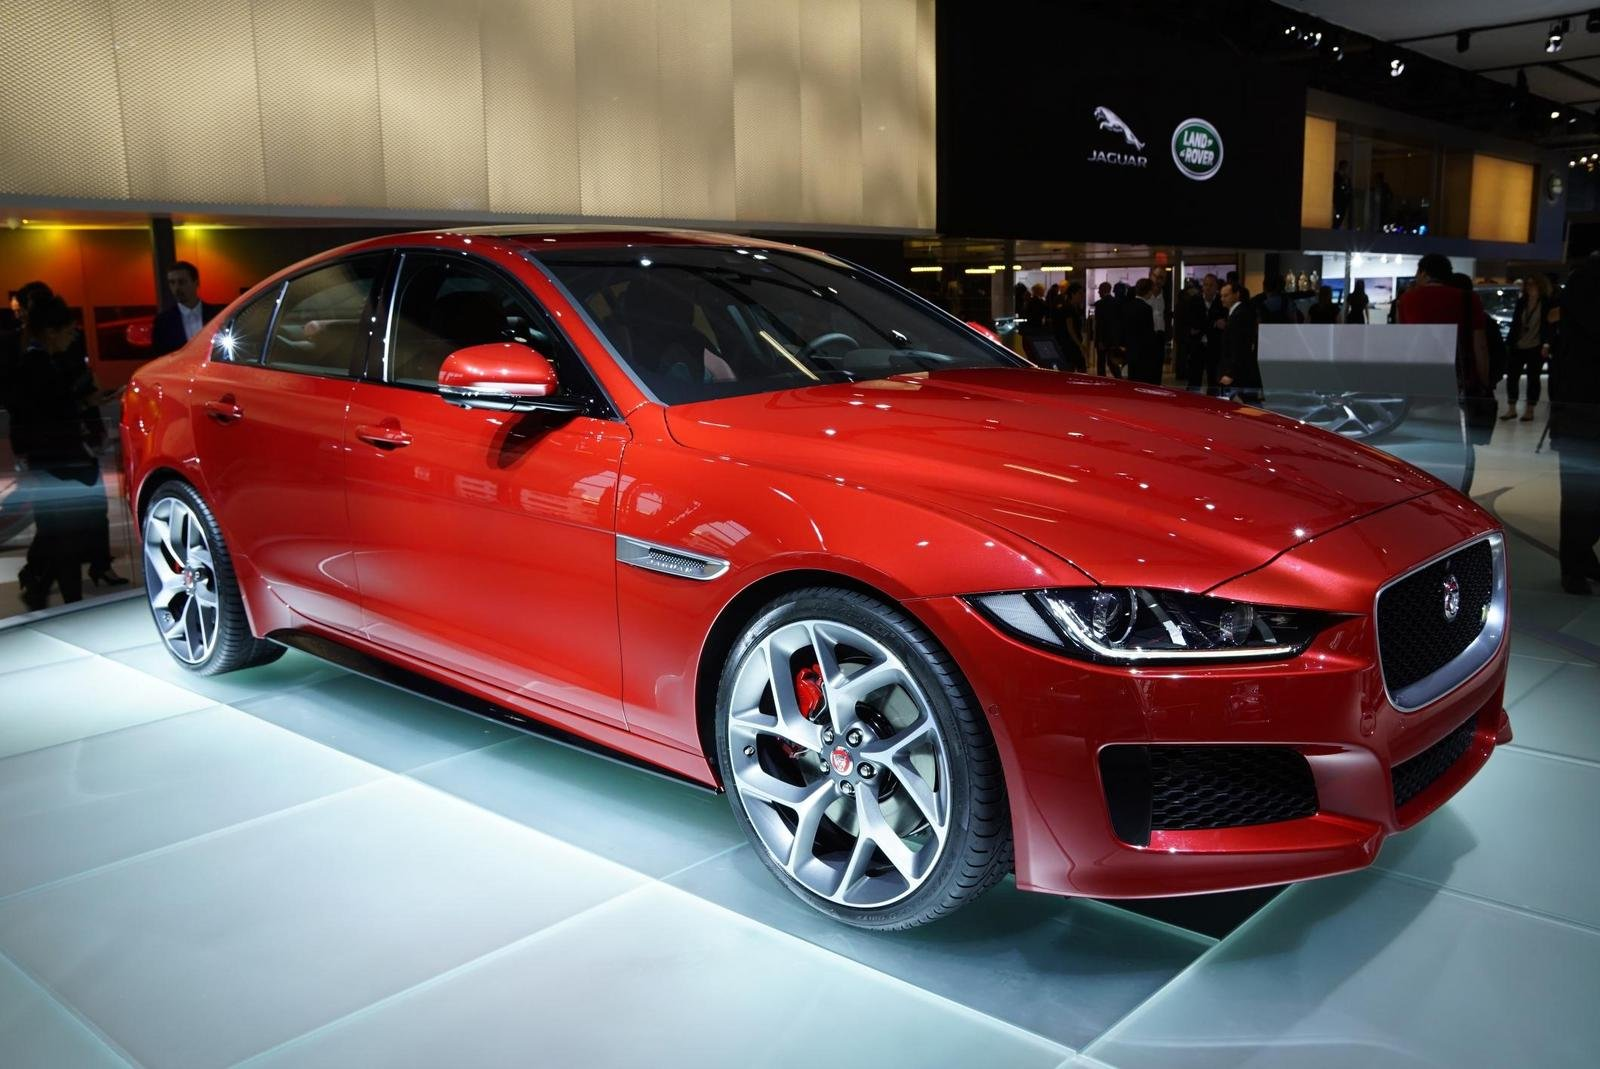 2017 jaguar xe picture 571328 car review top speed. Black Bedroom Furniture Sets. Home Design Ideas